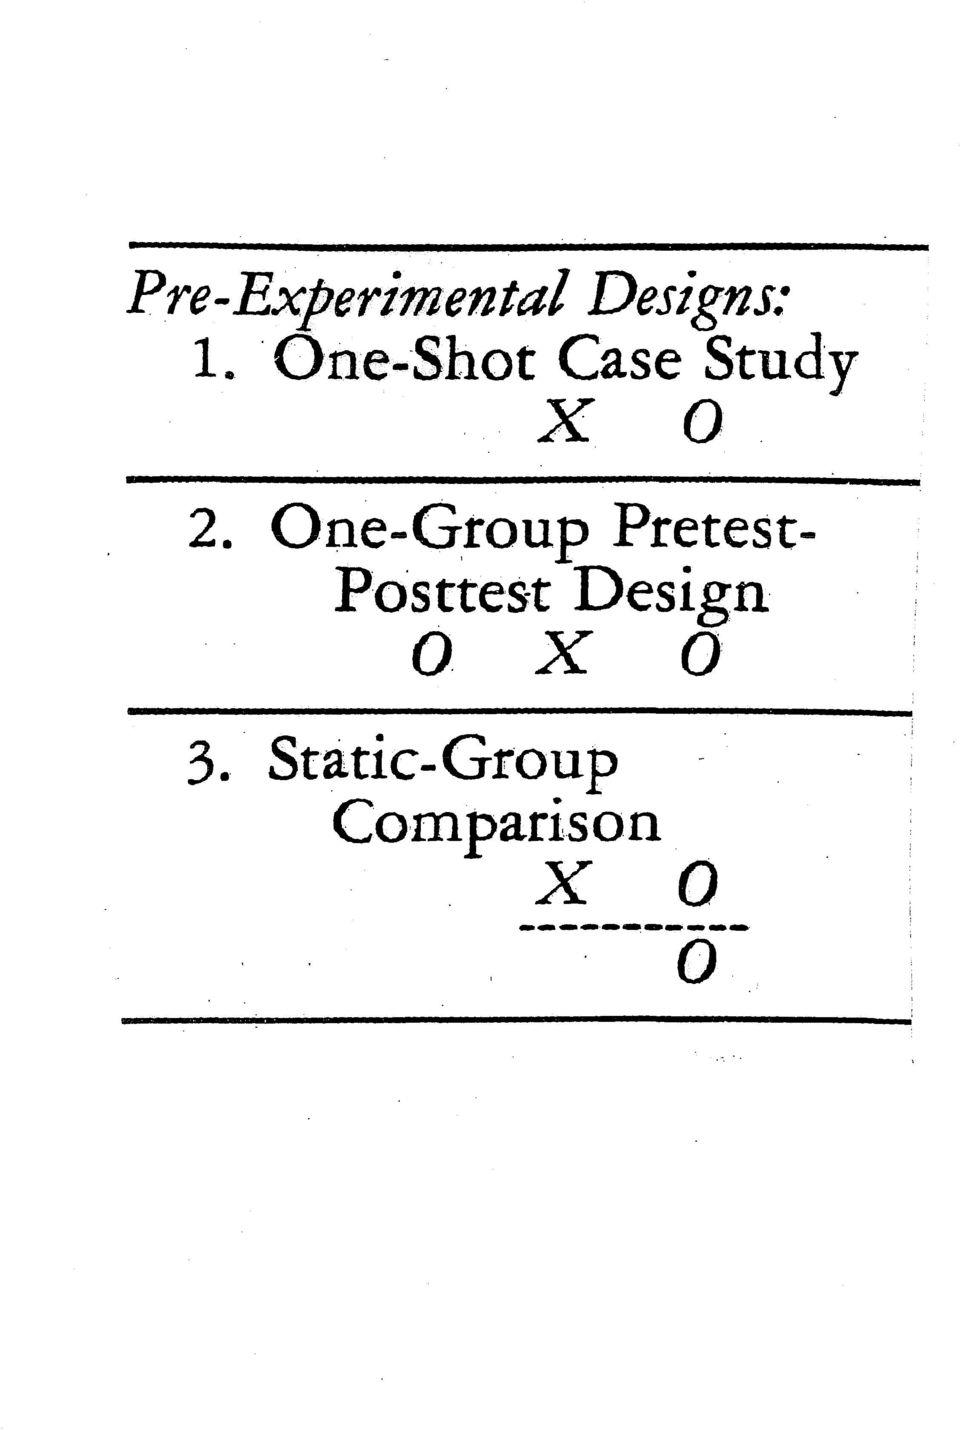 One-Group Pretest Posttest Design O.